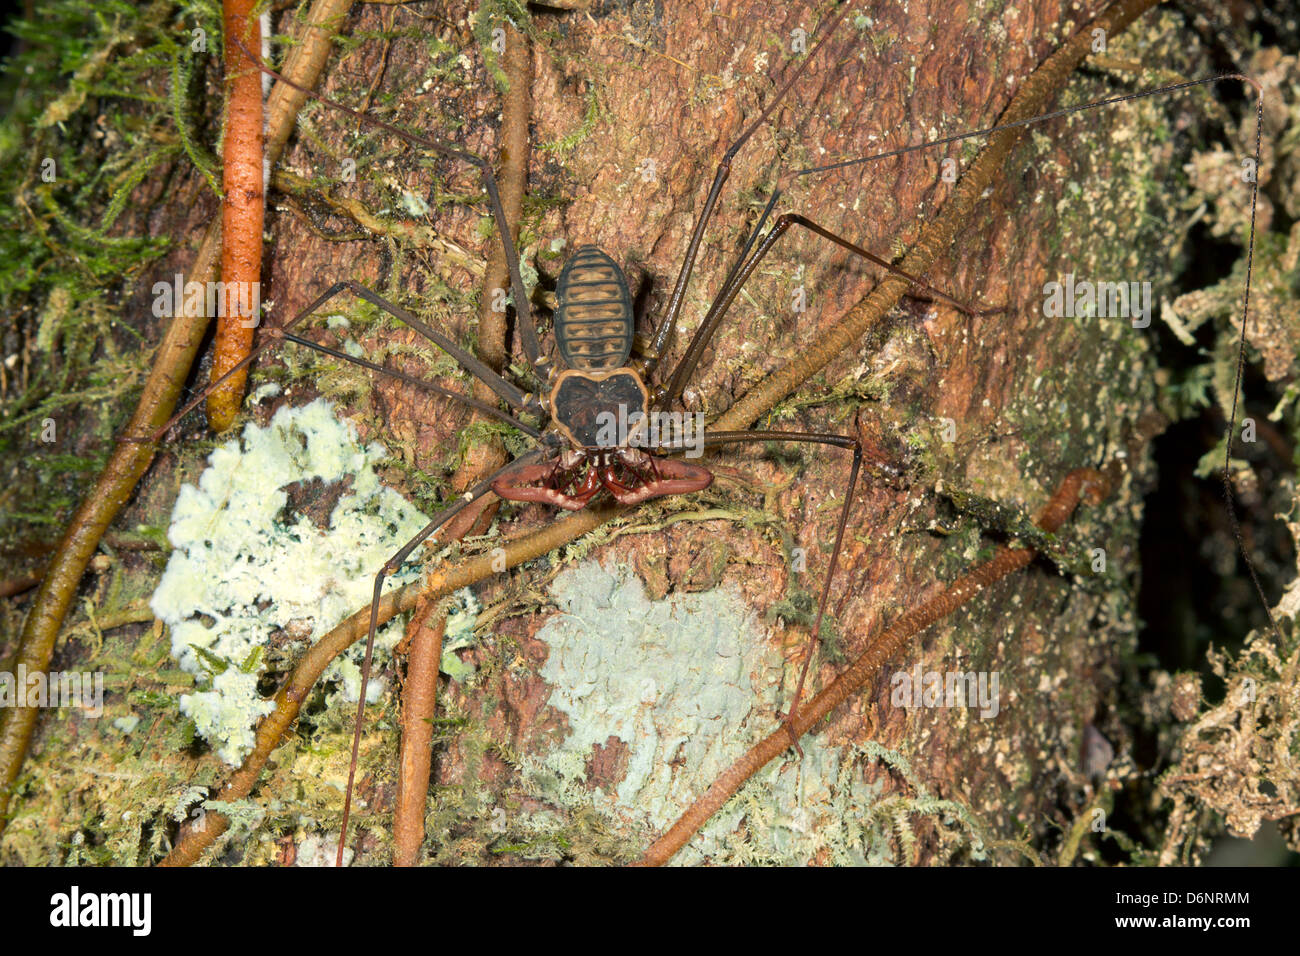 Tailless whipscorpion (Amblypygid) on a tree trunk in Ecuador - Stock Image